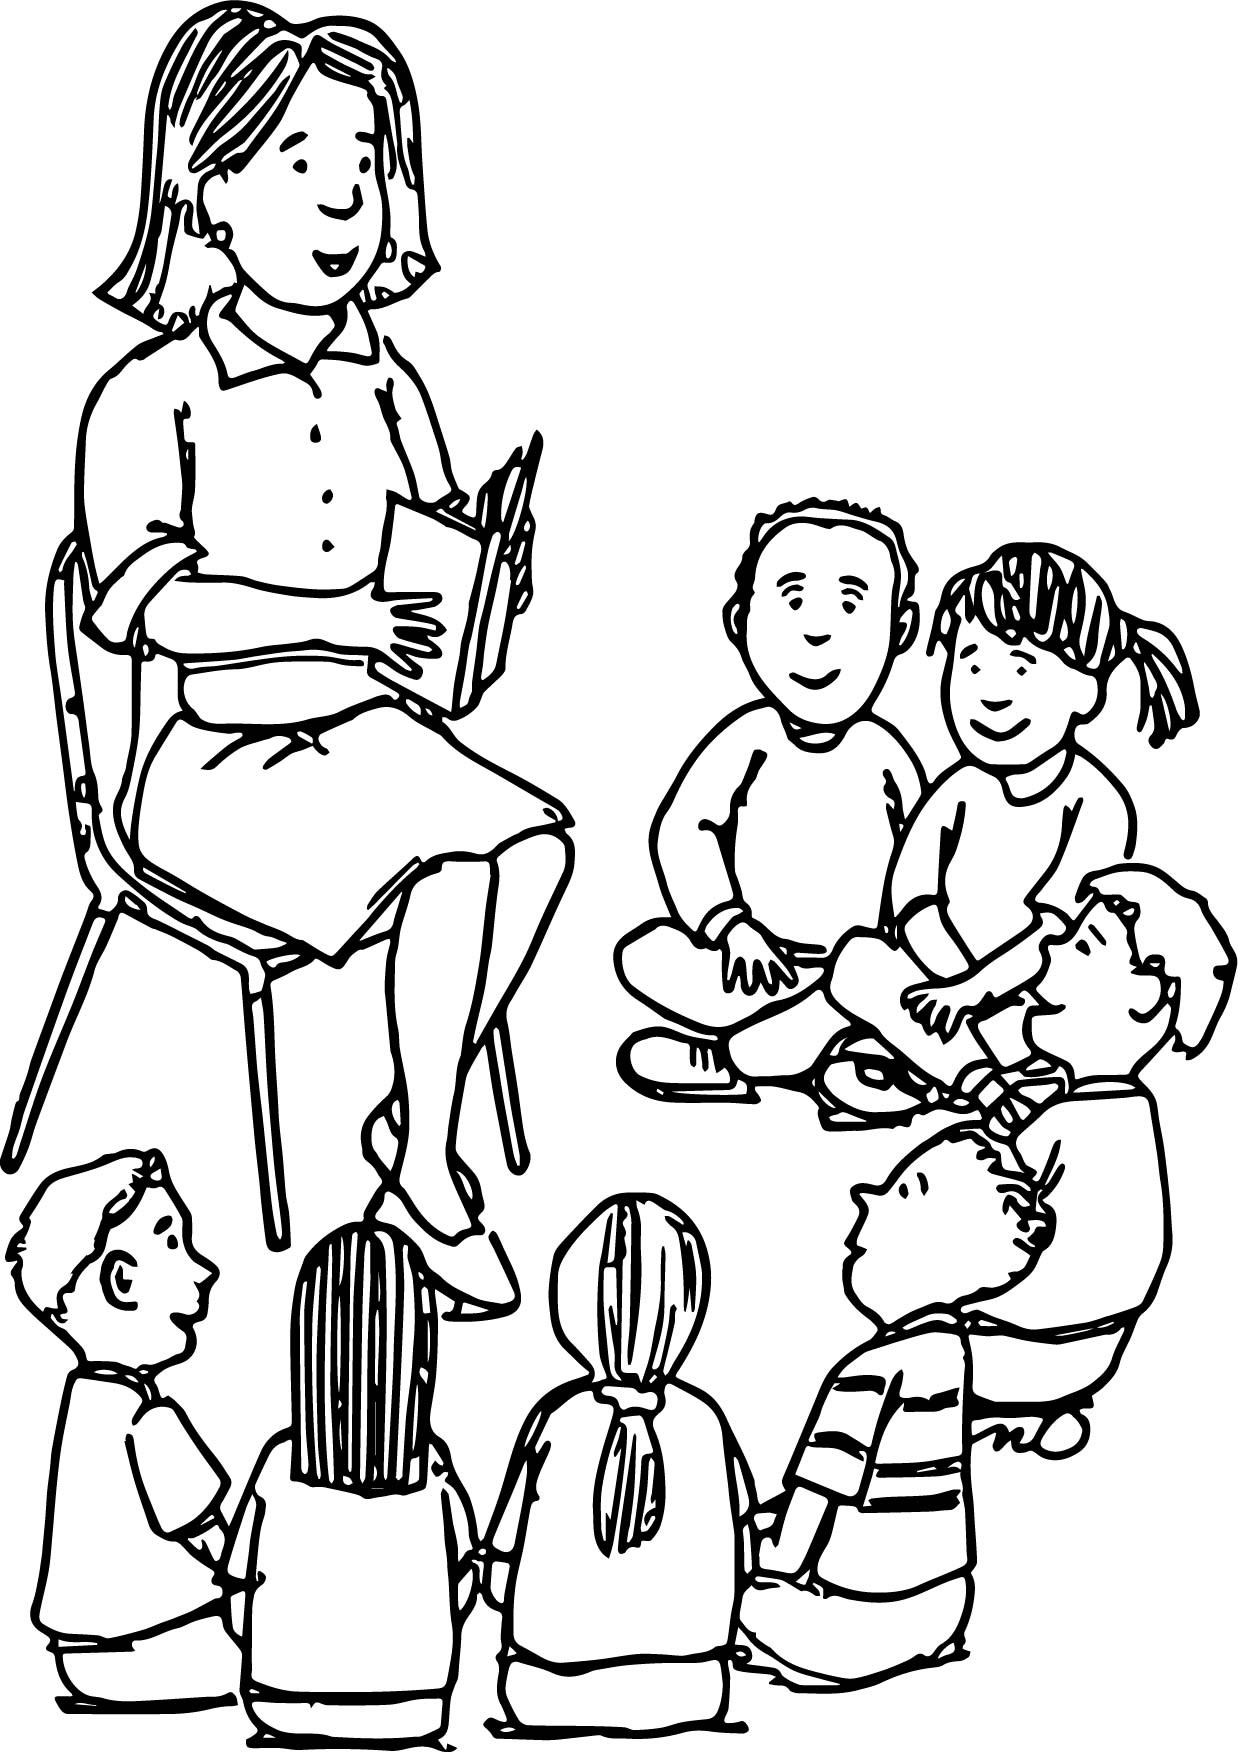 Best Coloring Books For Toddlers  Teacher Coloring Pages Best Coloring Pages For Kids